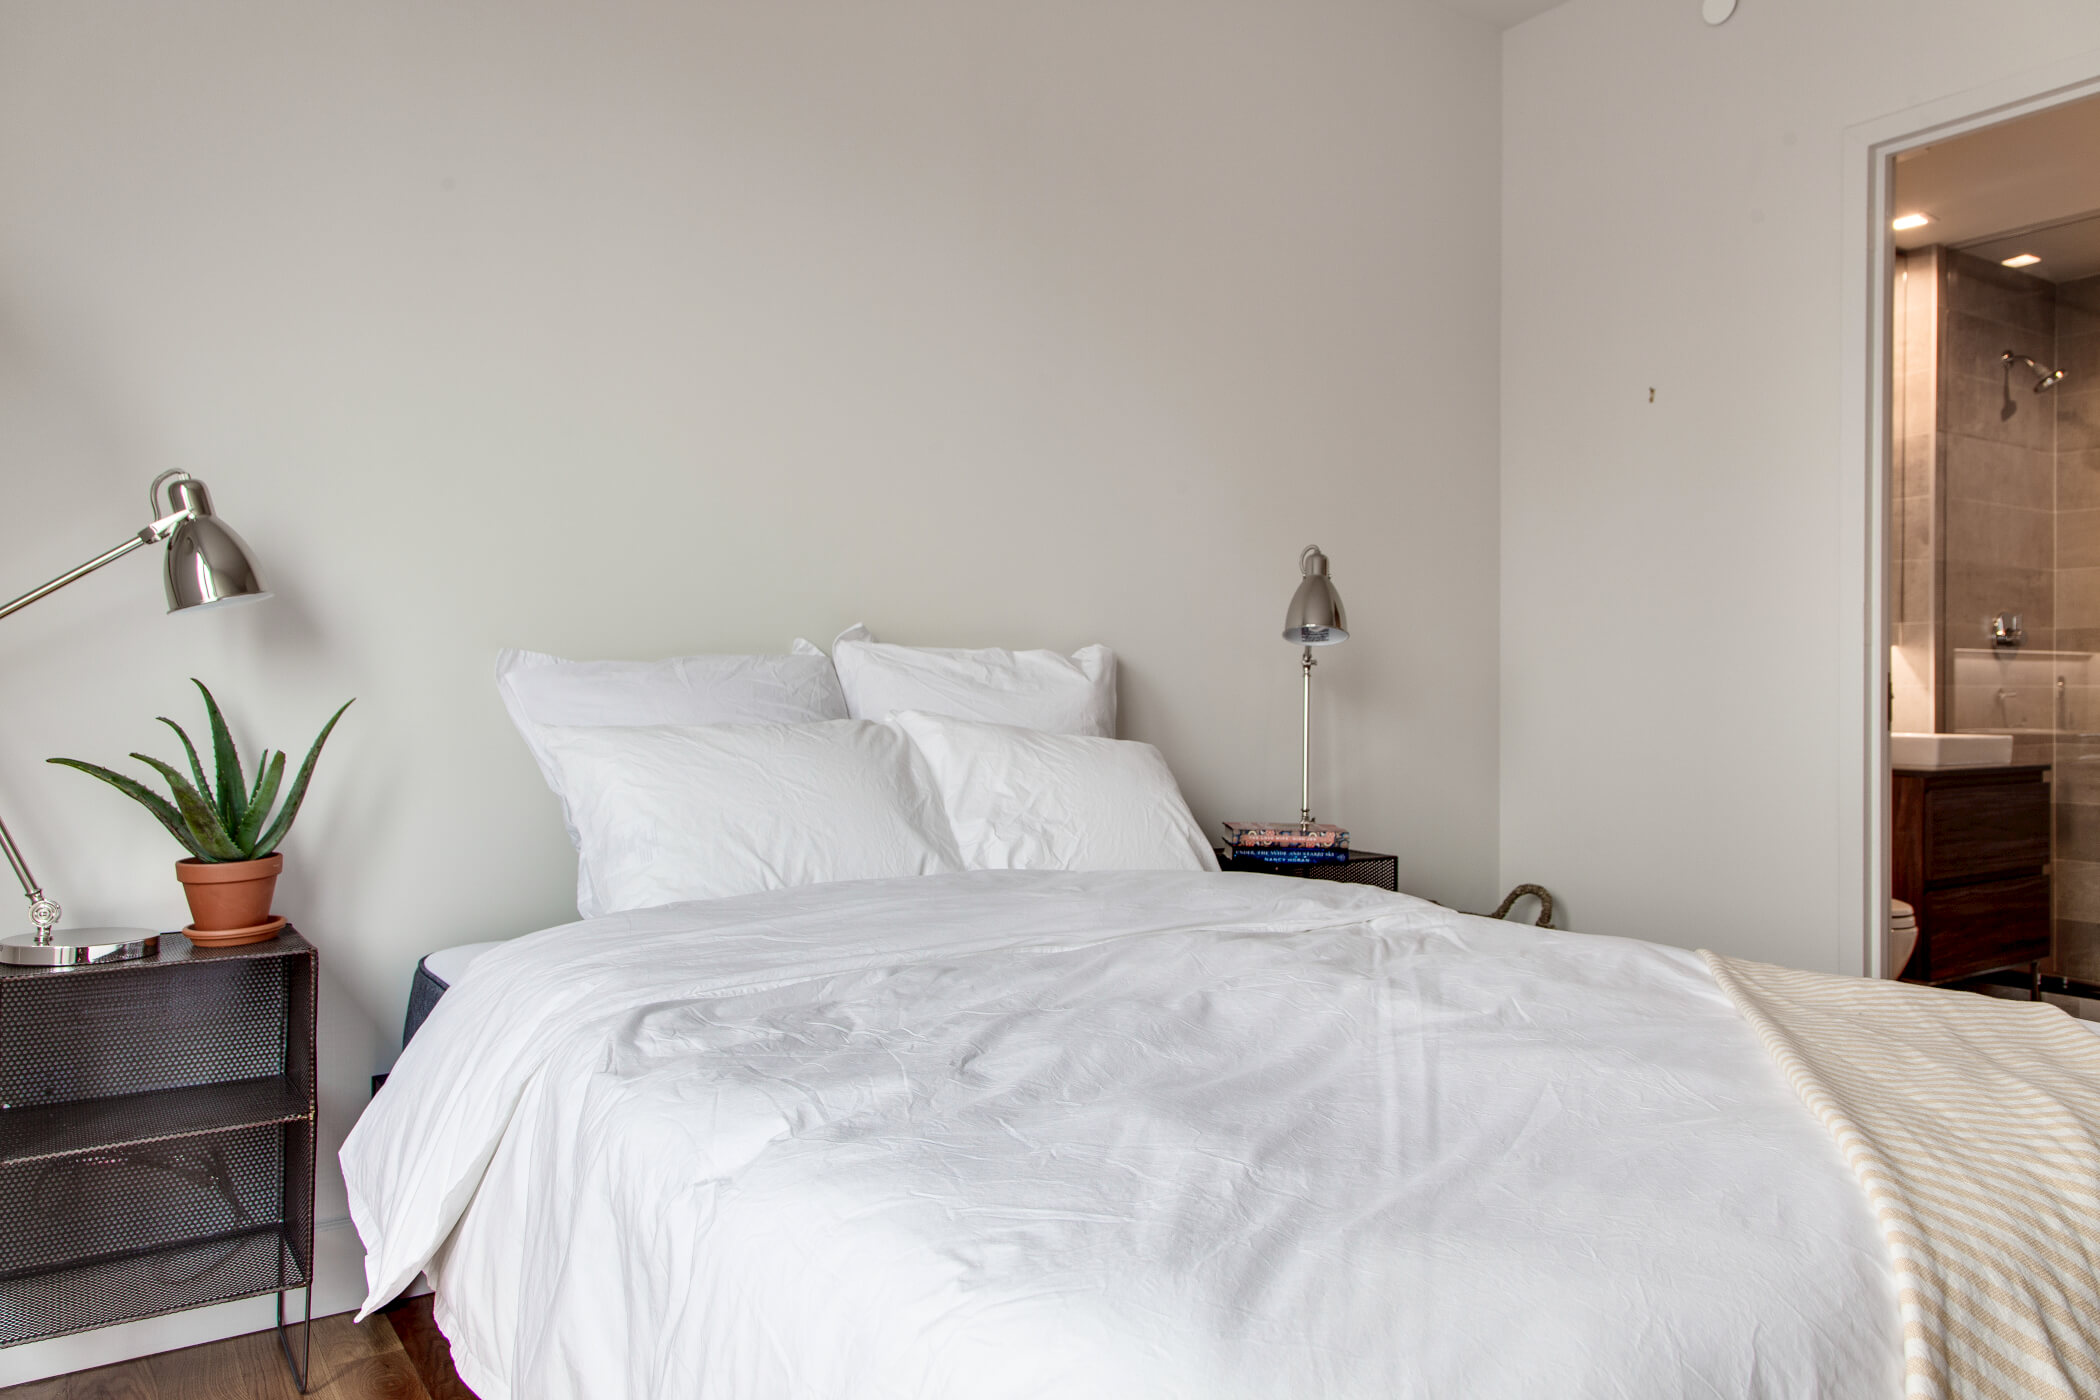 A private bedroom with ensuite bathroom at Common Baltic in Boerum Hill, Brooklyn.